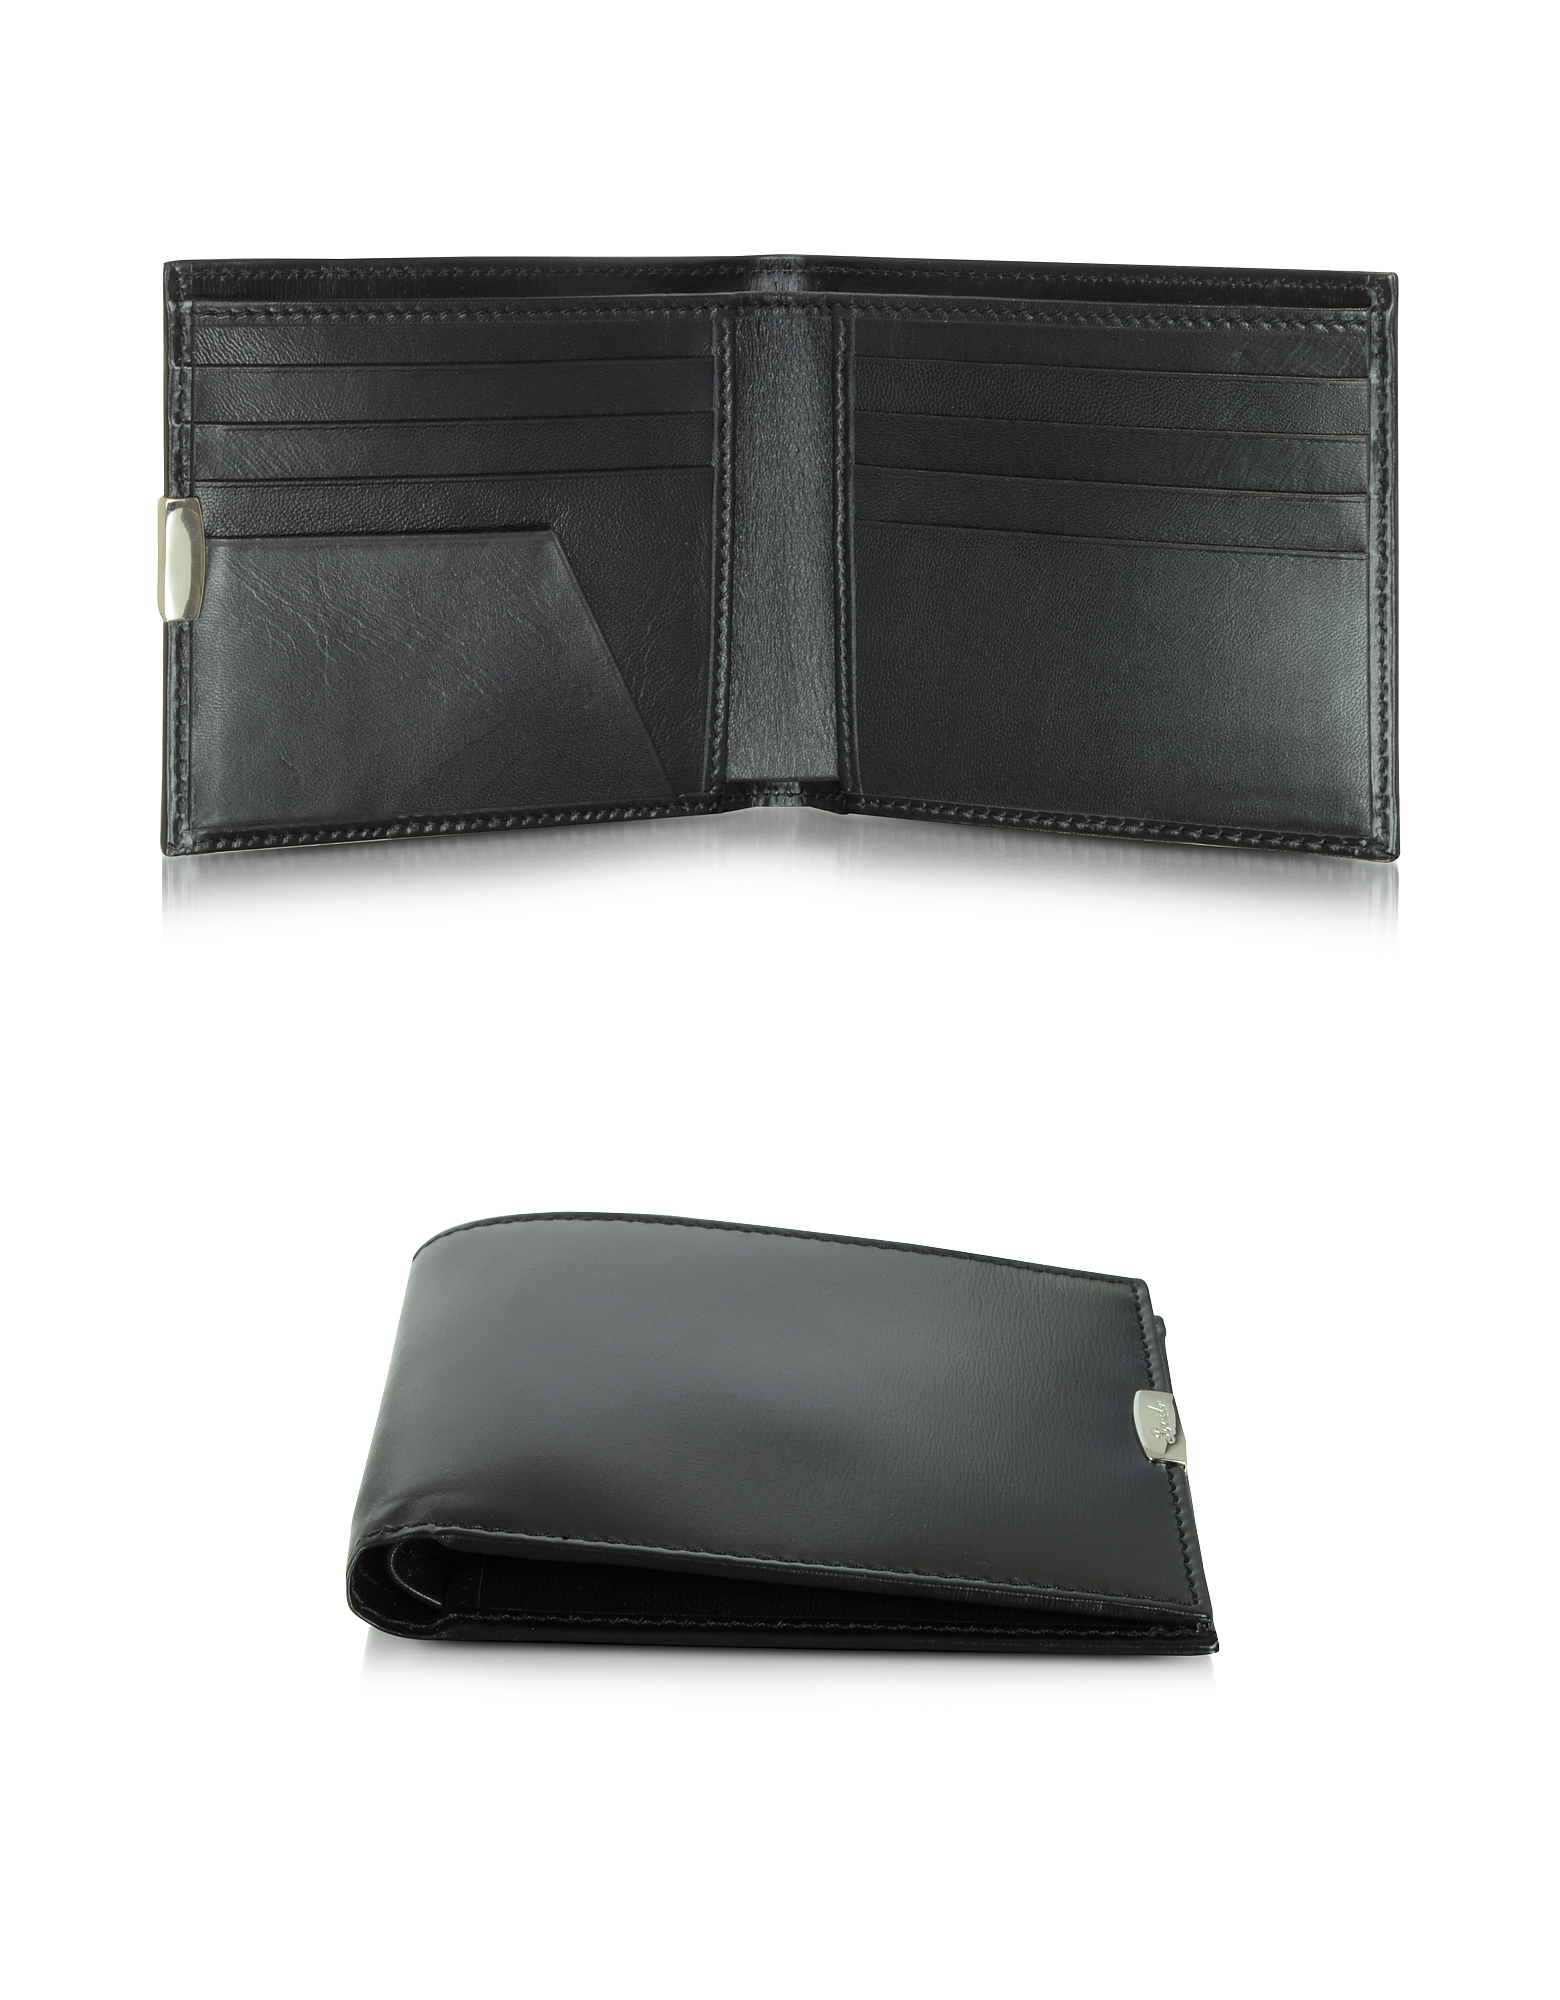 1949 Small Black Leather Men's Wallet